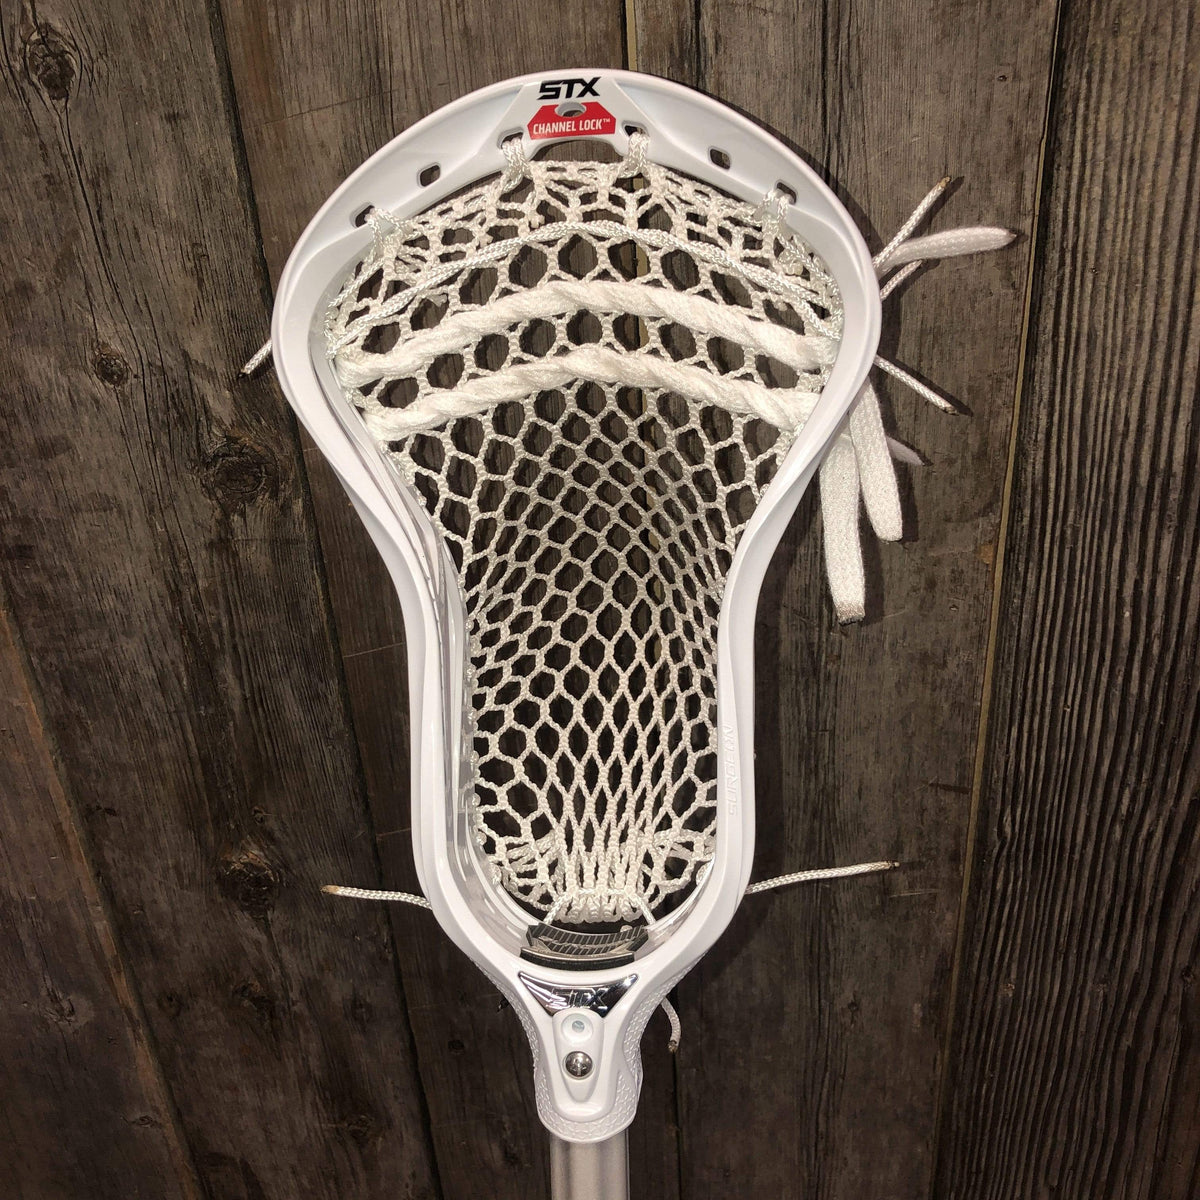 Complete Lacrosse Stick STX Surgeon Scandium with a Custom Strung STX Surgeon 700 Head